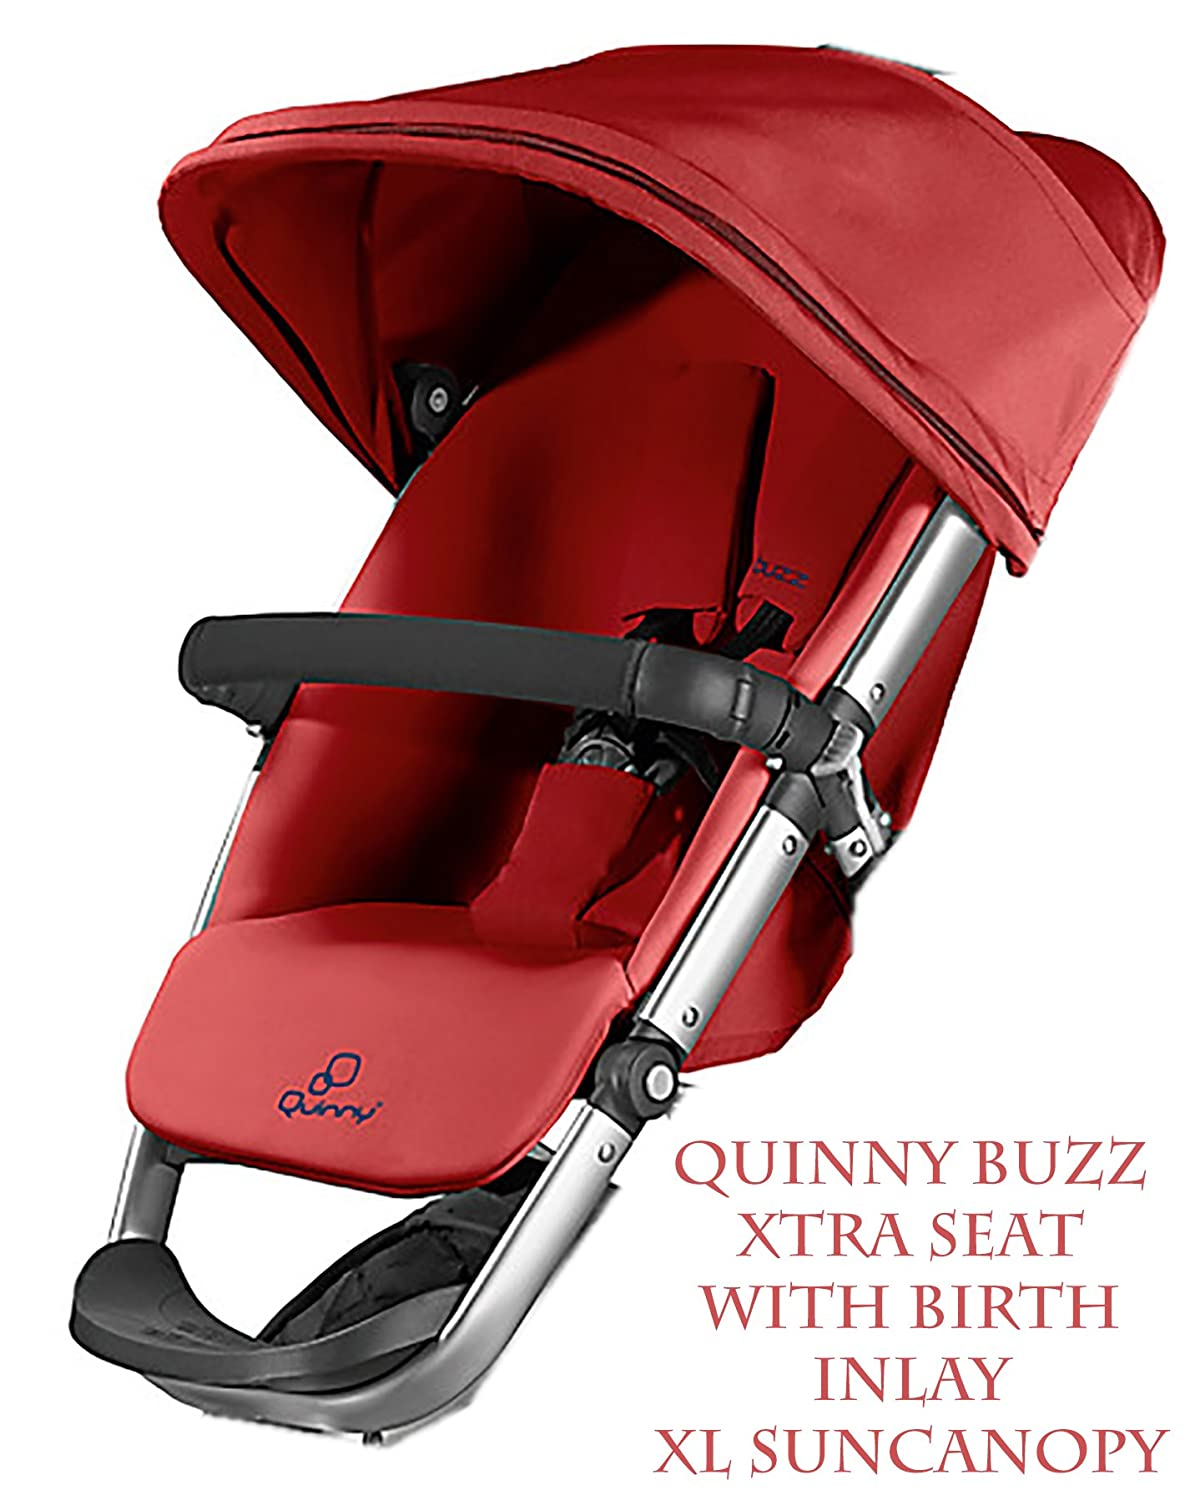 New Quinny Buzz Xtra Seat unit and inlay from birth to 3 years incl Sun Canopy